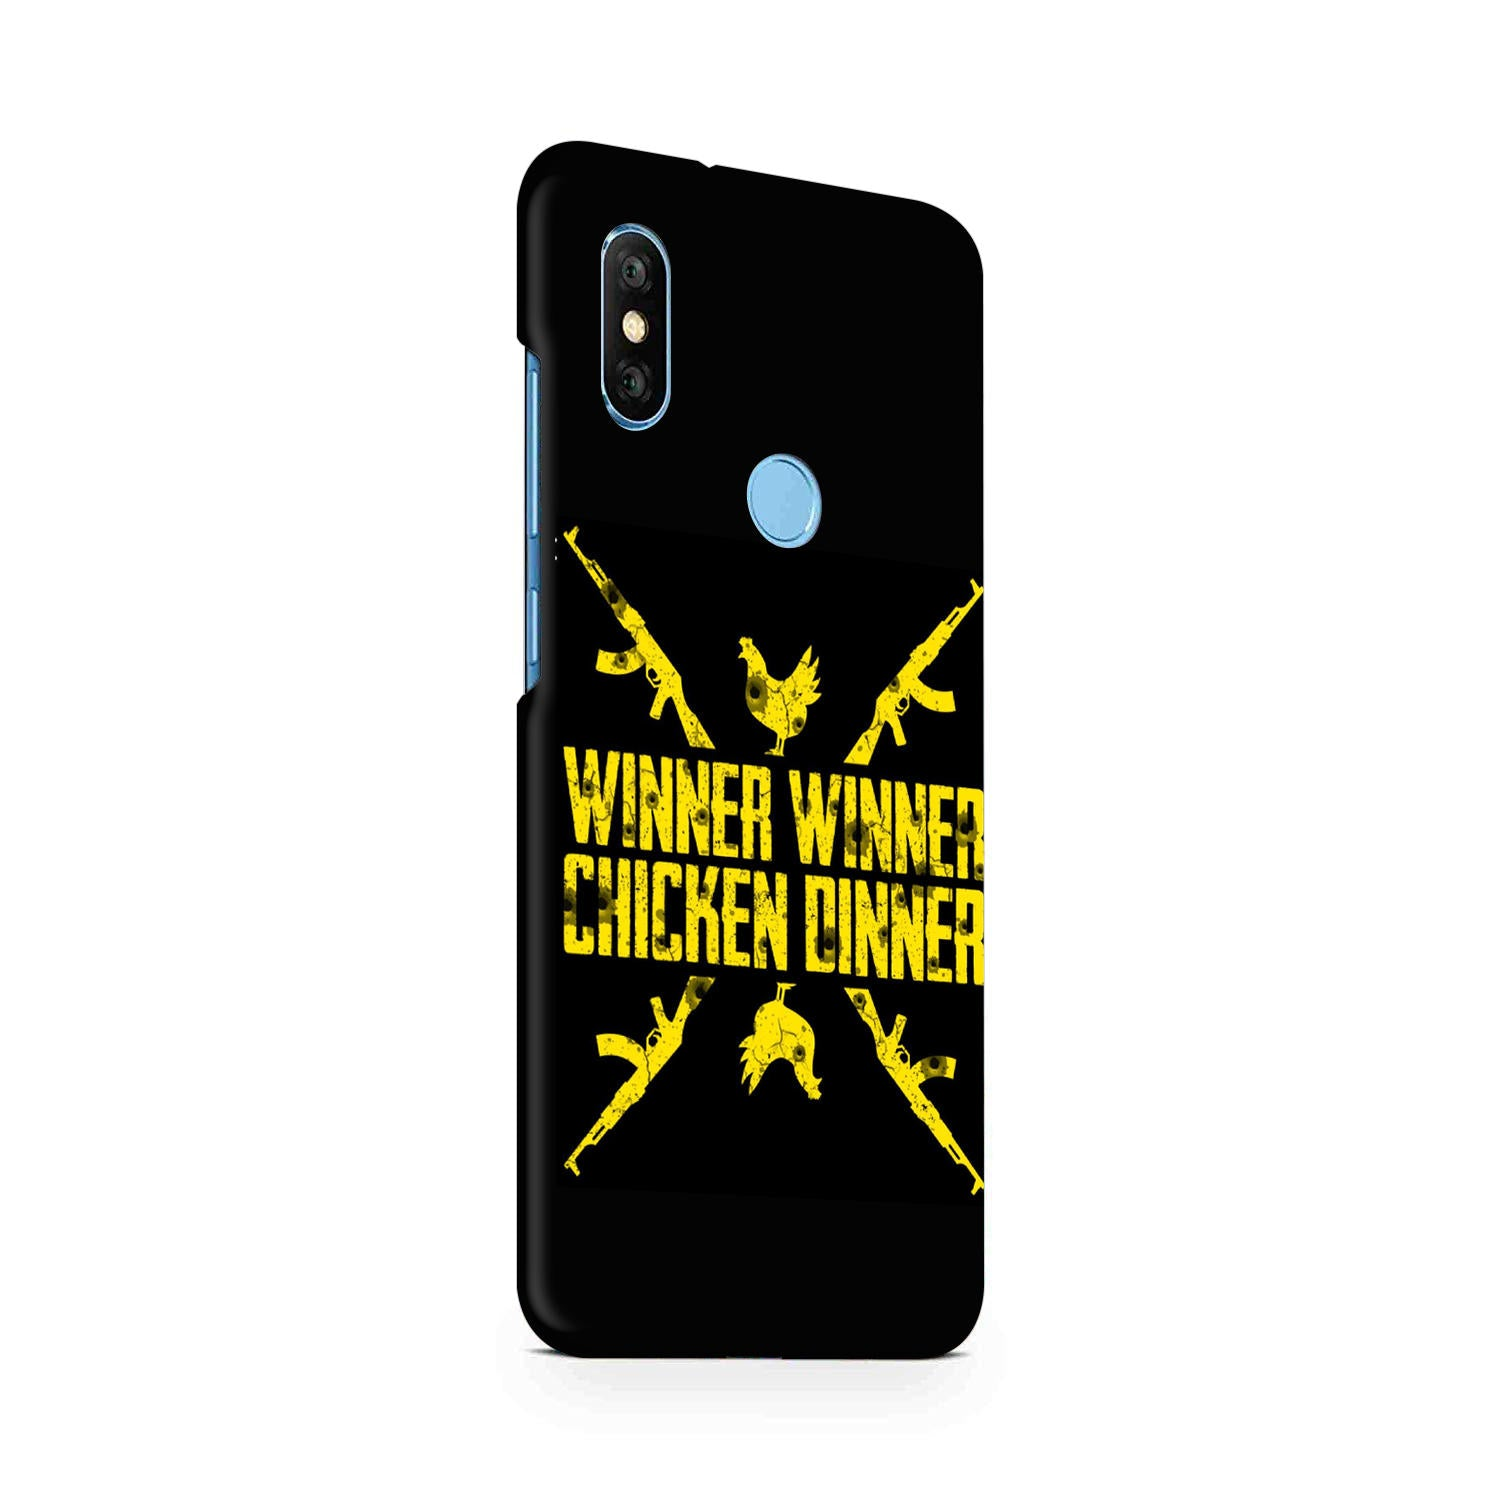 Gun And Chicken For Winner Typography Art RedMi Note 6 Pro Mobile Cover Case - MADANYU